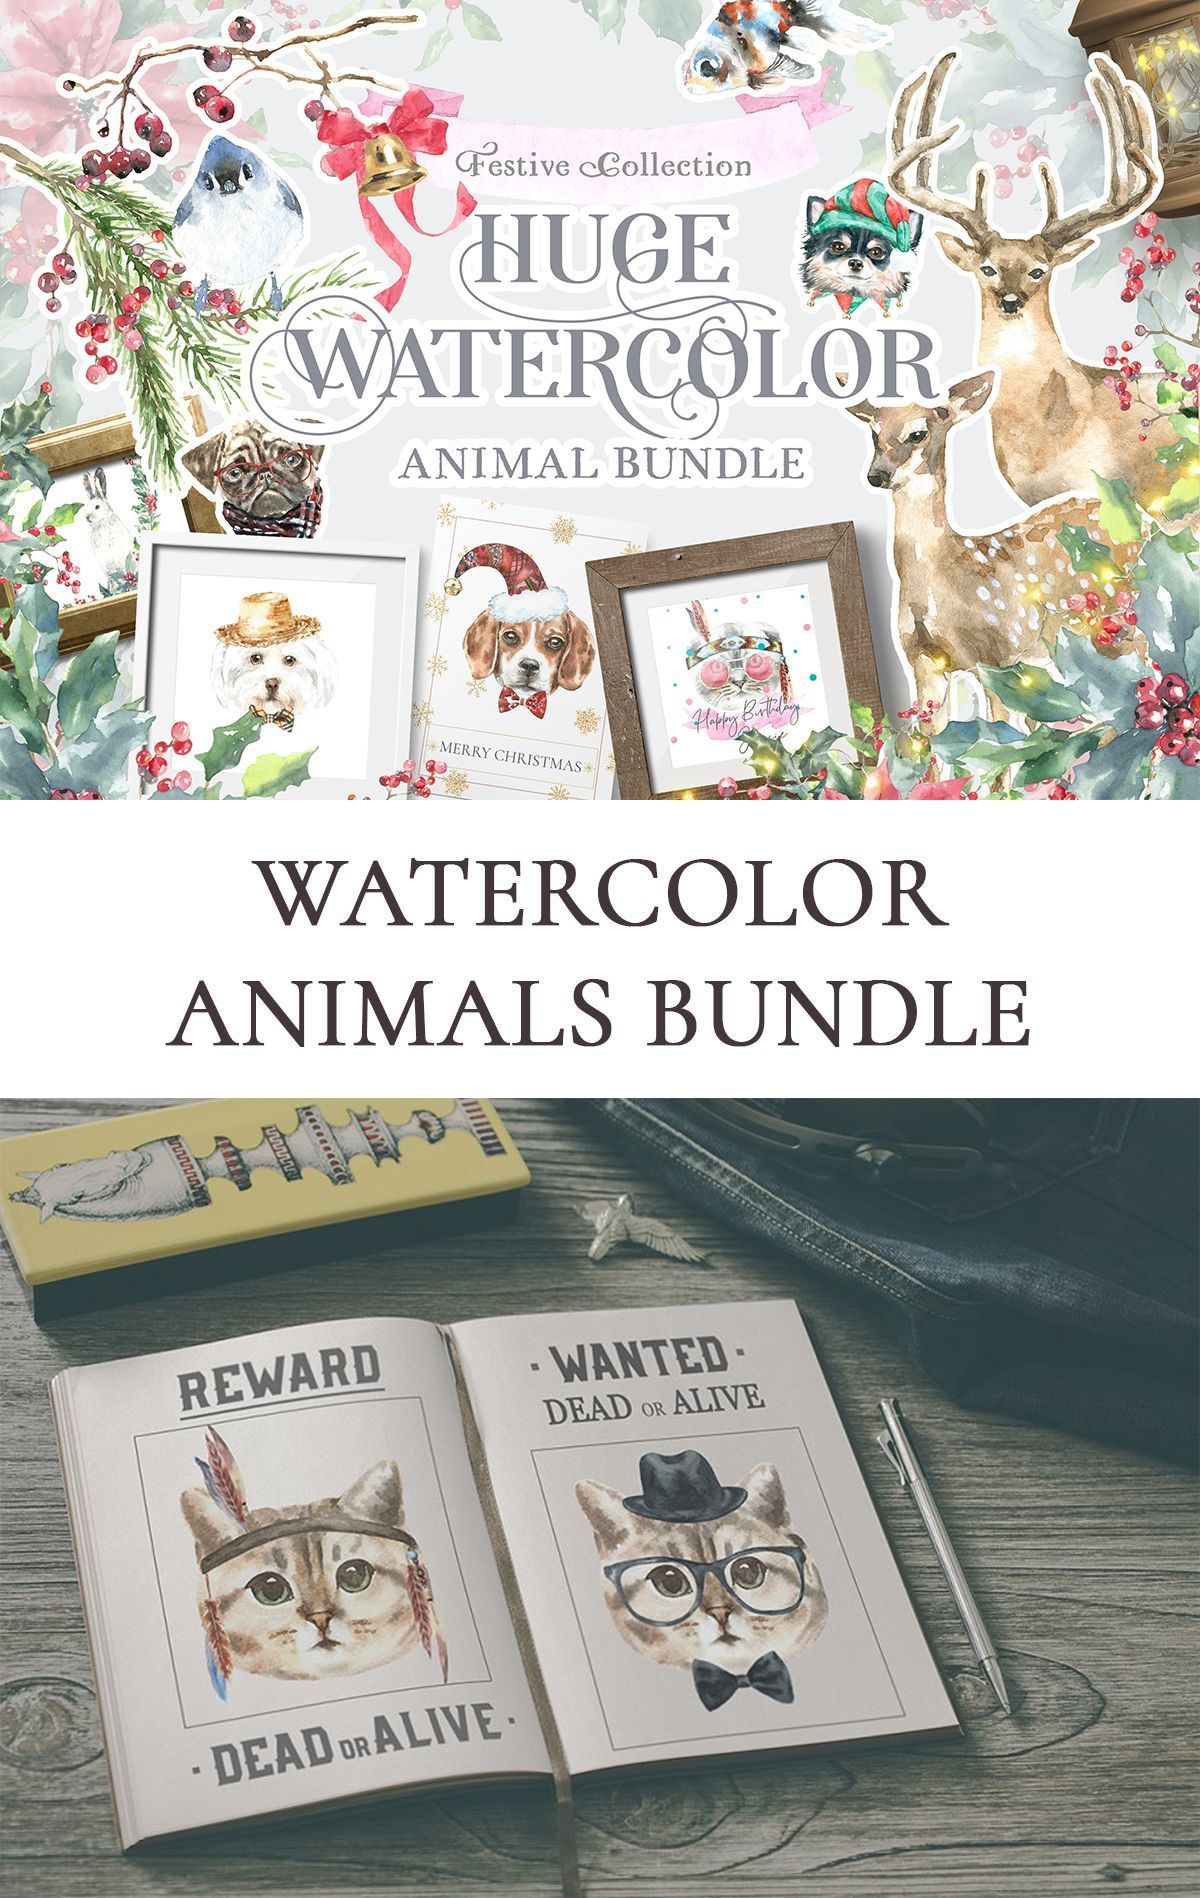 Watercolor Animals Bundle #1weihnachtstaglustig Watercolor Animals Bundle Dog Breed Clipart. woodland animals christmas animal poster,hipster dog portrait,wall art,nursery art printable Christmas projects, new year of dog design,baby shower invitation cards, vintage postcards,children clothes,nursery design, greeting cards, happy birthday, cards for your pets dogs cats happy birthday, printables, wall art, logo, invitations, gift boxes, textile, websites, festive paper christmas stickers #1weihn